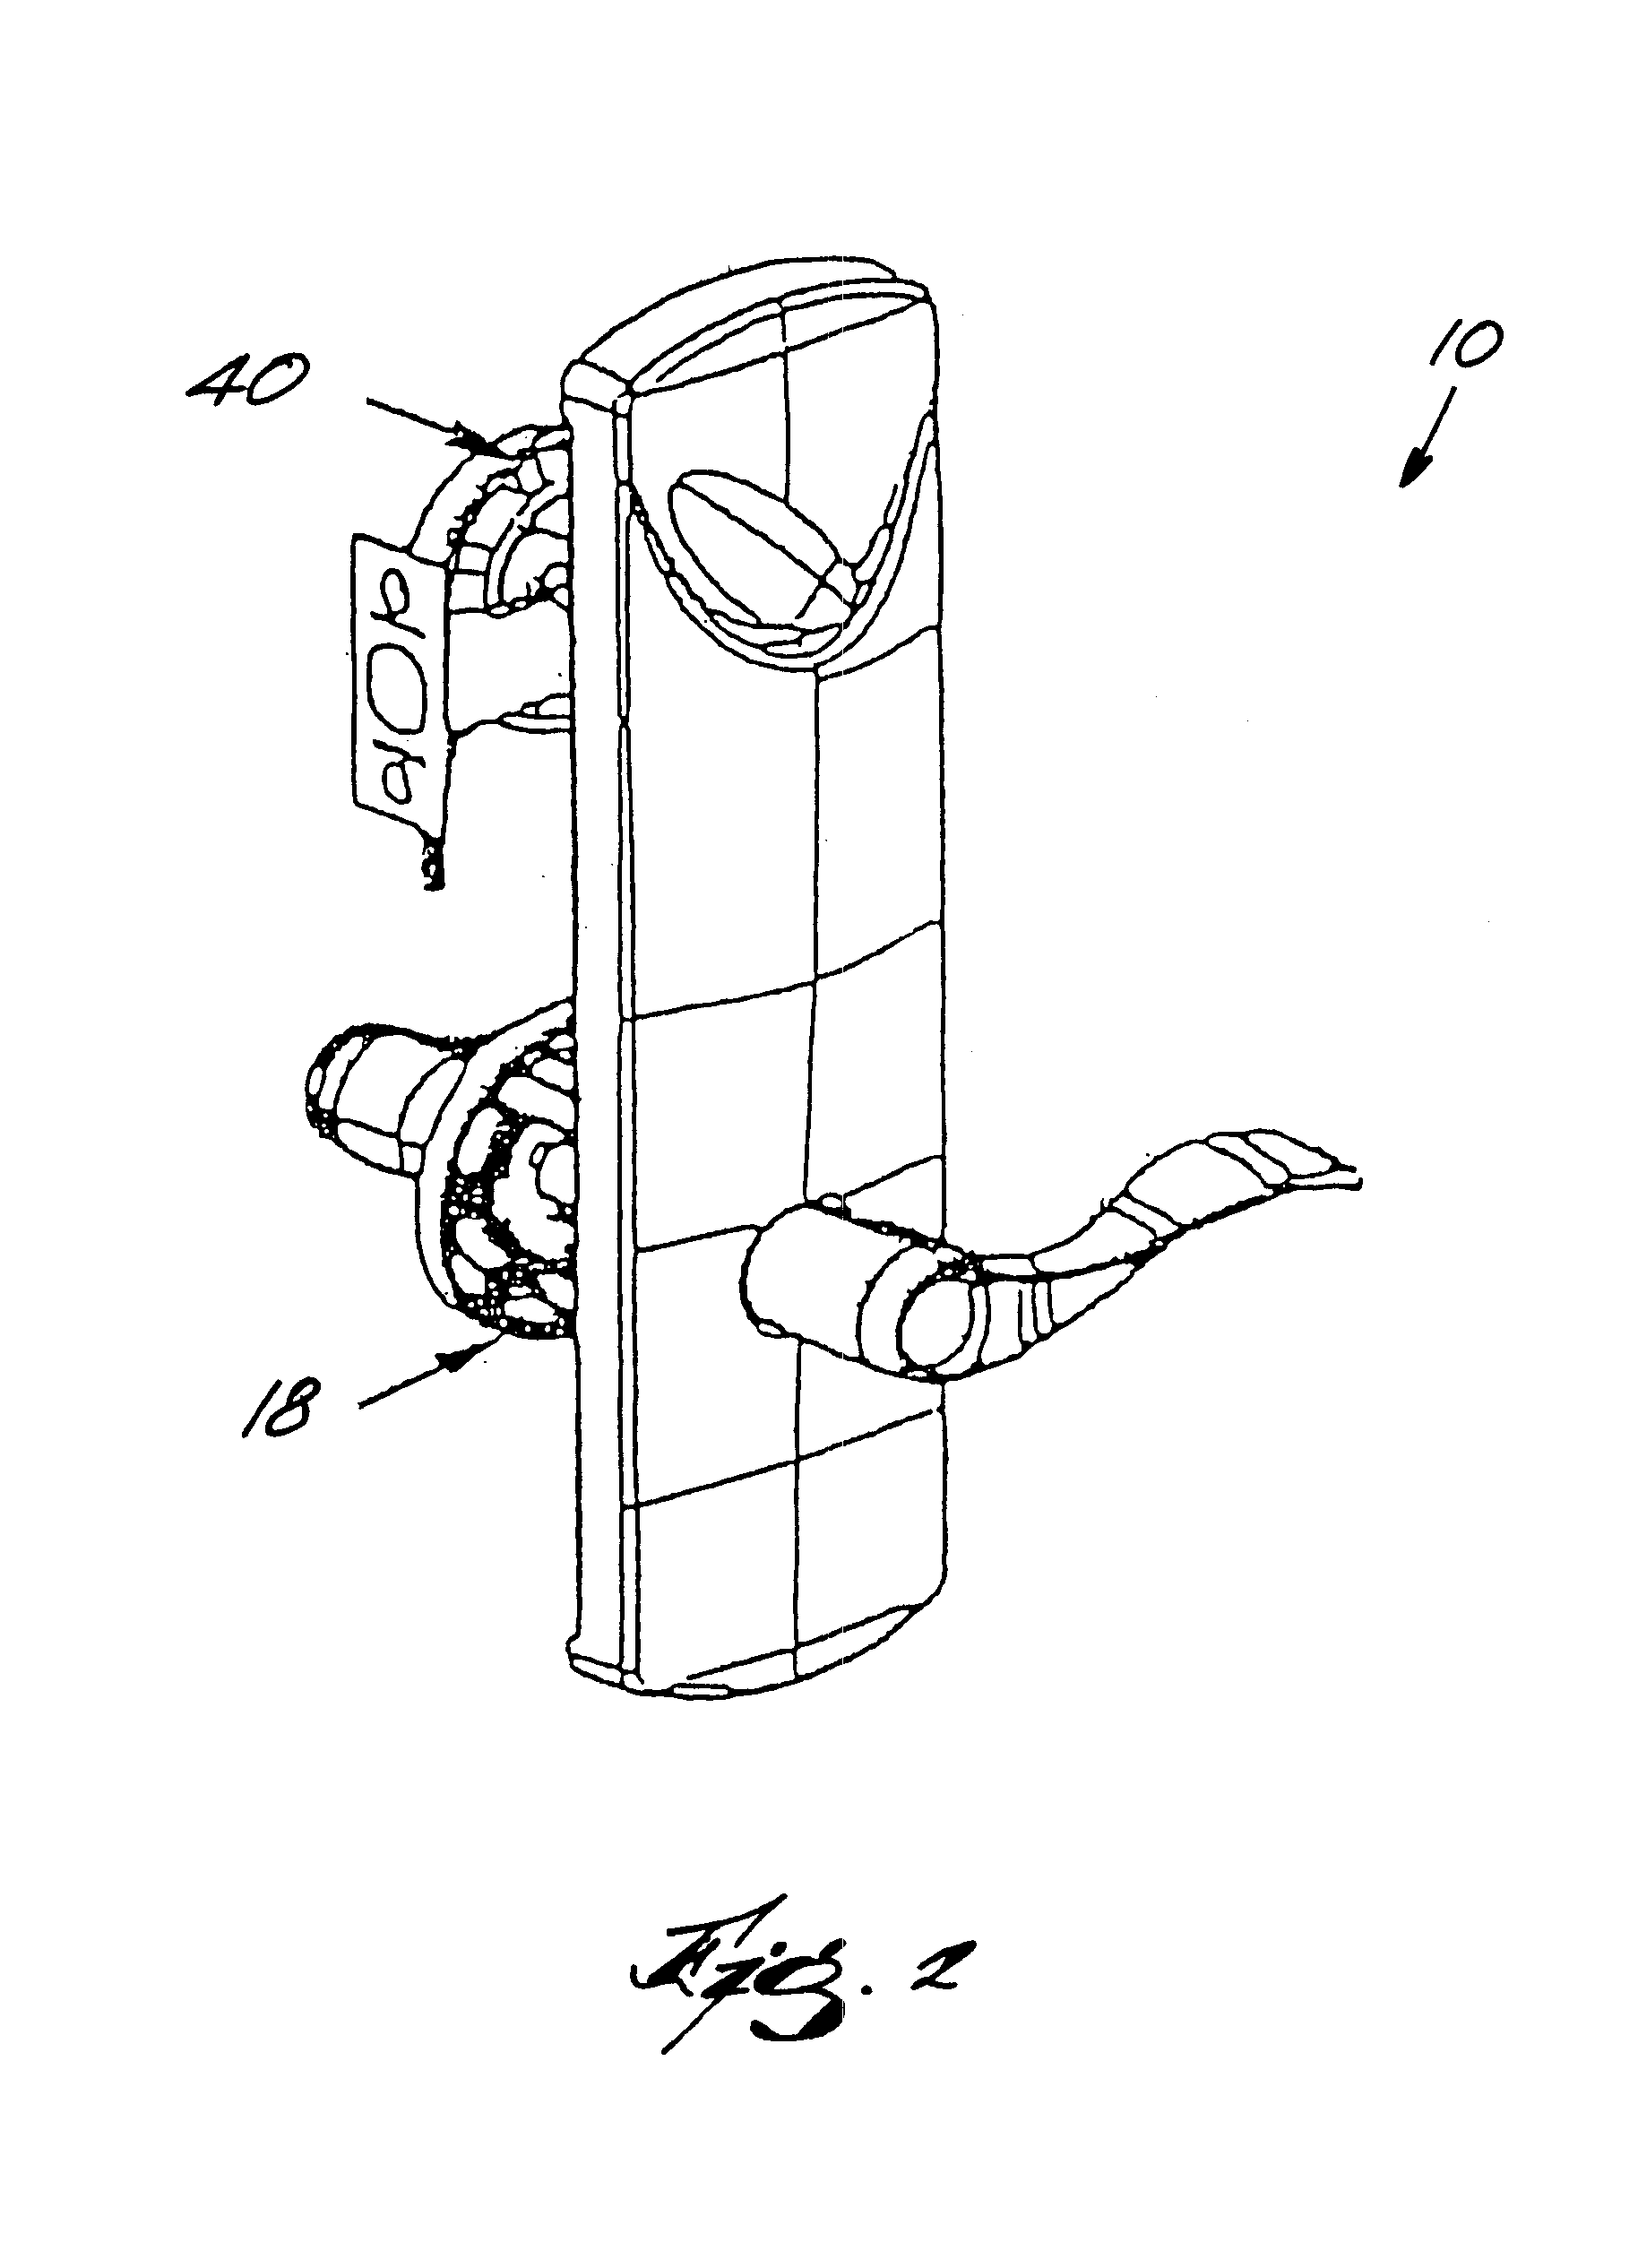 patent us6612141 - interconnected lock with remote locking mechanism